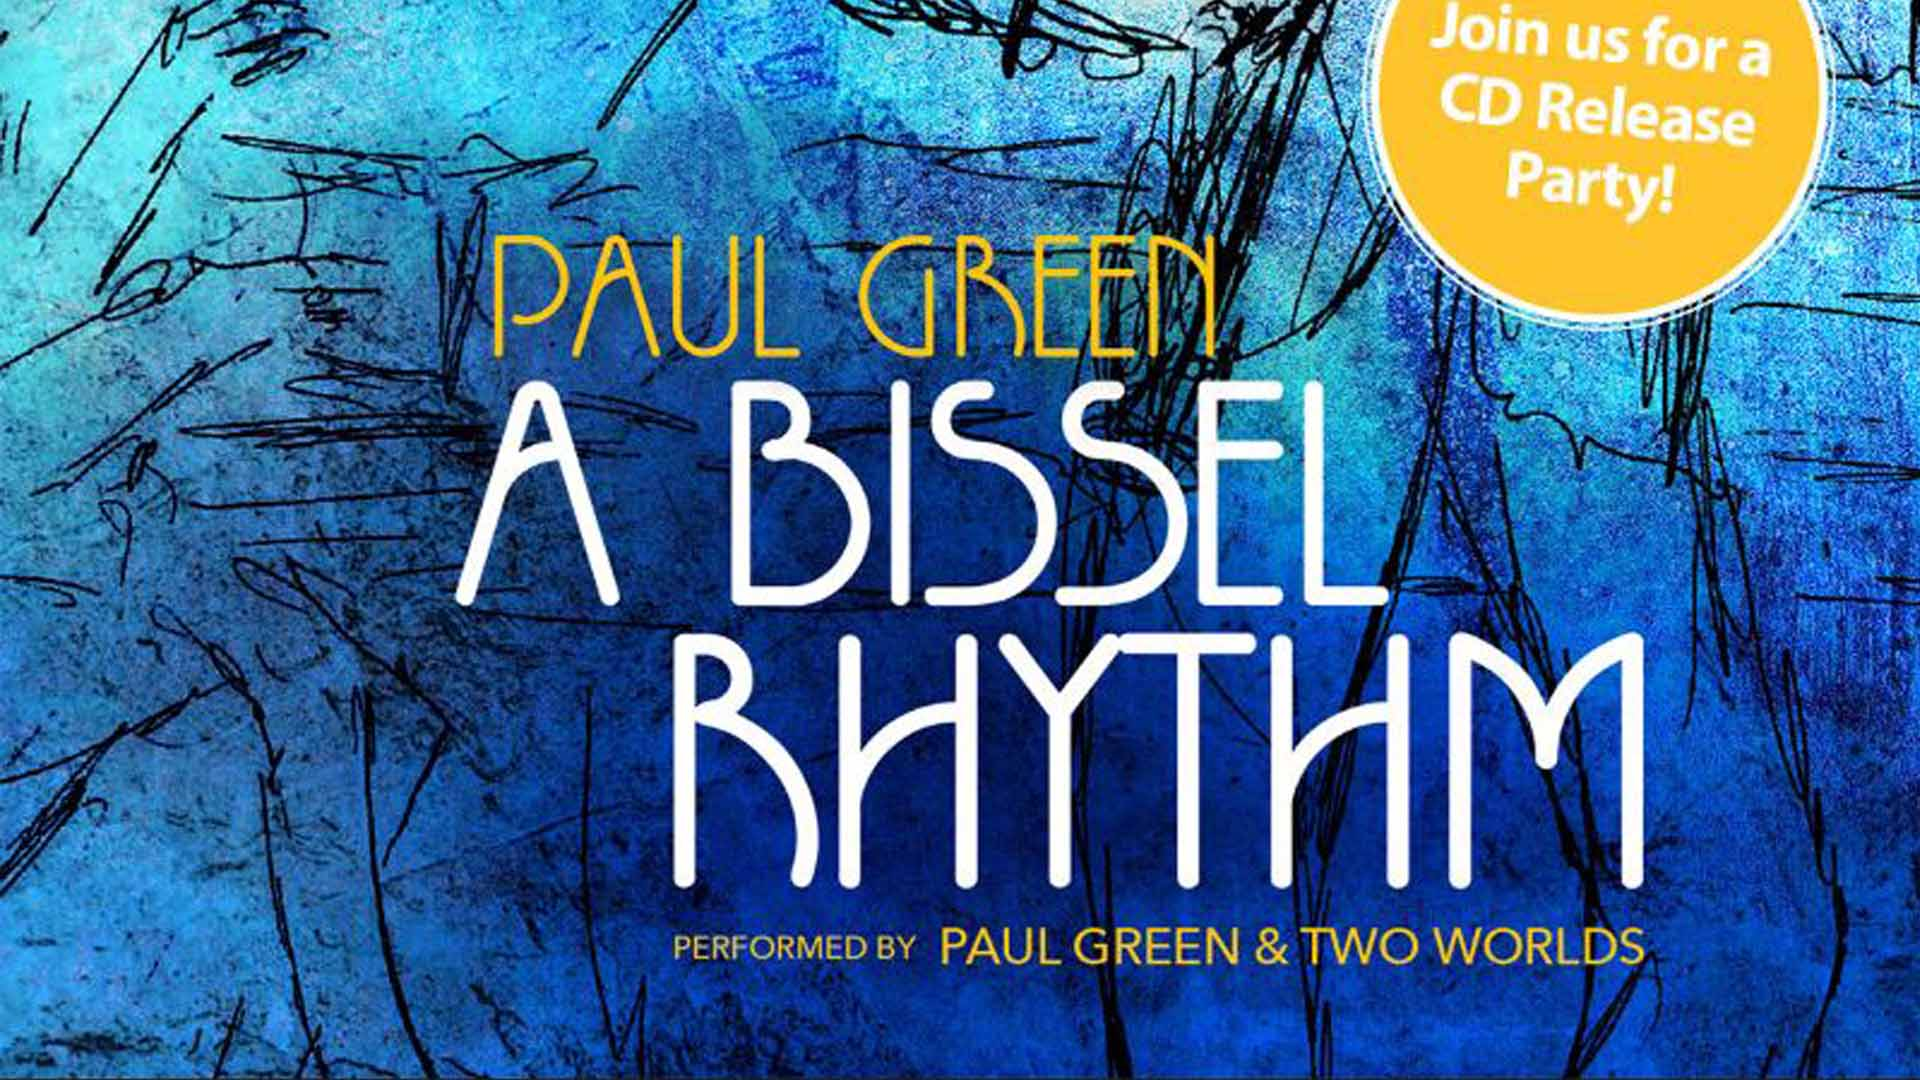 Paul Green on CD Release Party & Performance at Caffe Lena